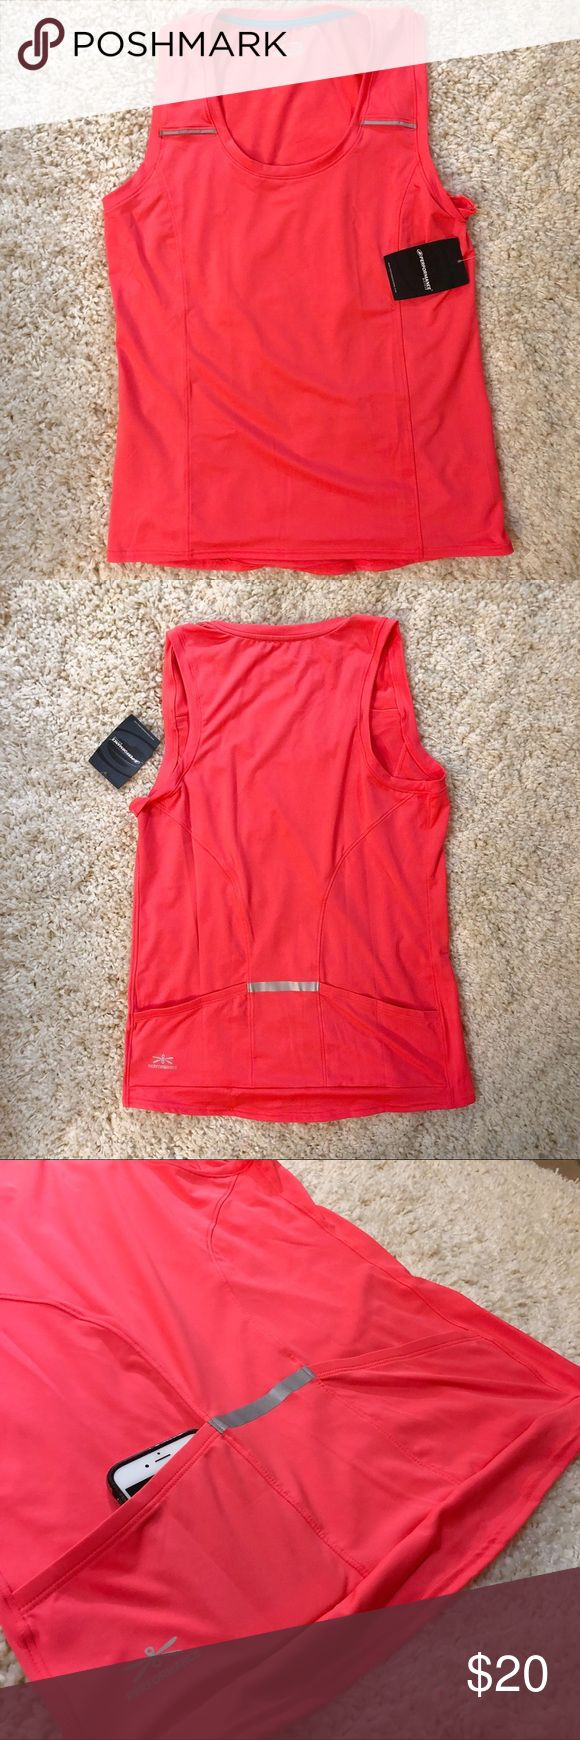 Performance - Sleeveless Cycling Jersey NWT. Never worn. 🚴🏼‍♂️ Semi-fitted; women's size L; color is listed as coral but it is more like a hot pink; has reflective details on shoulders and back pocket; 2 angled pockets (iPhone 6 for size reference); great for storing snacks, water bottle, or other necessities for your riding needs! Performance Bicycle Tops Tank Tops